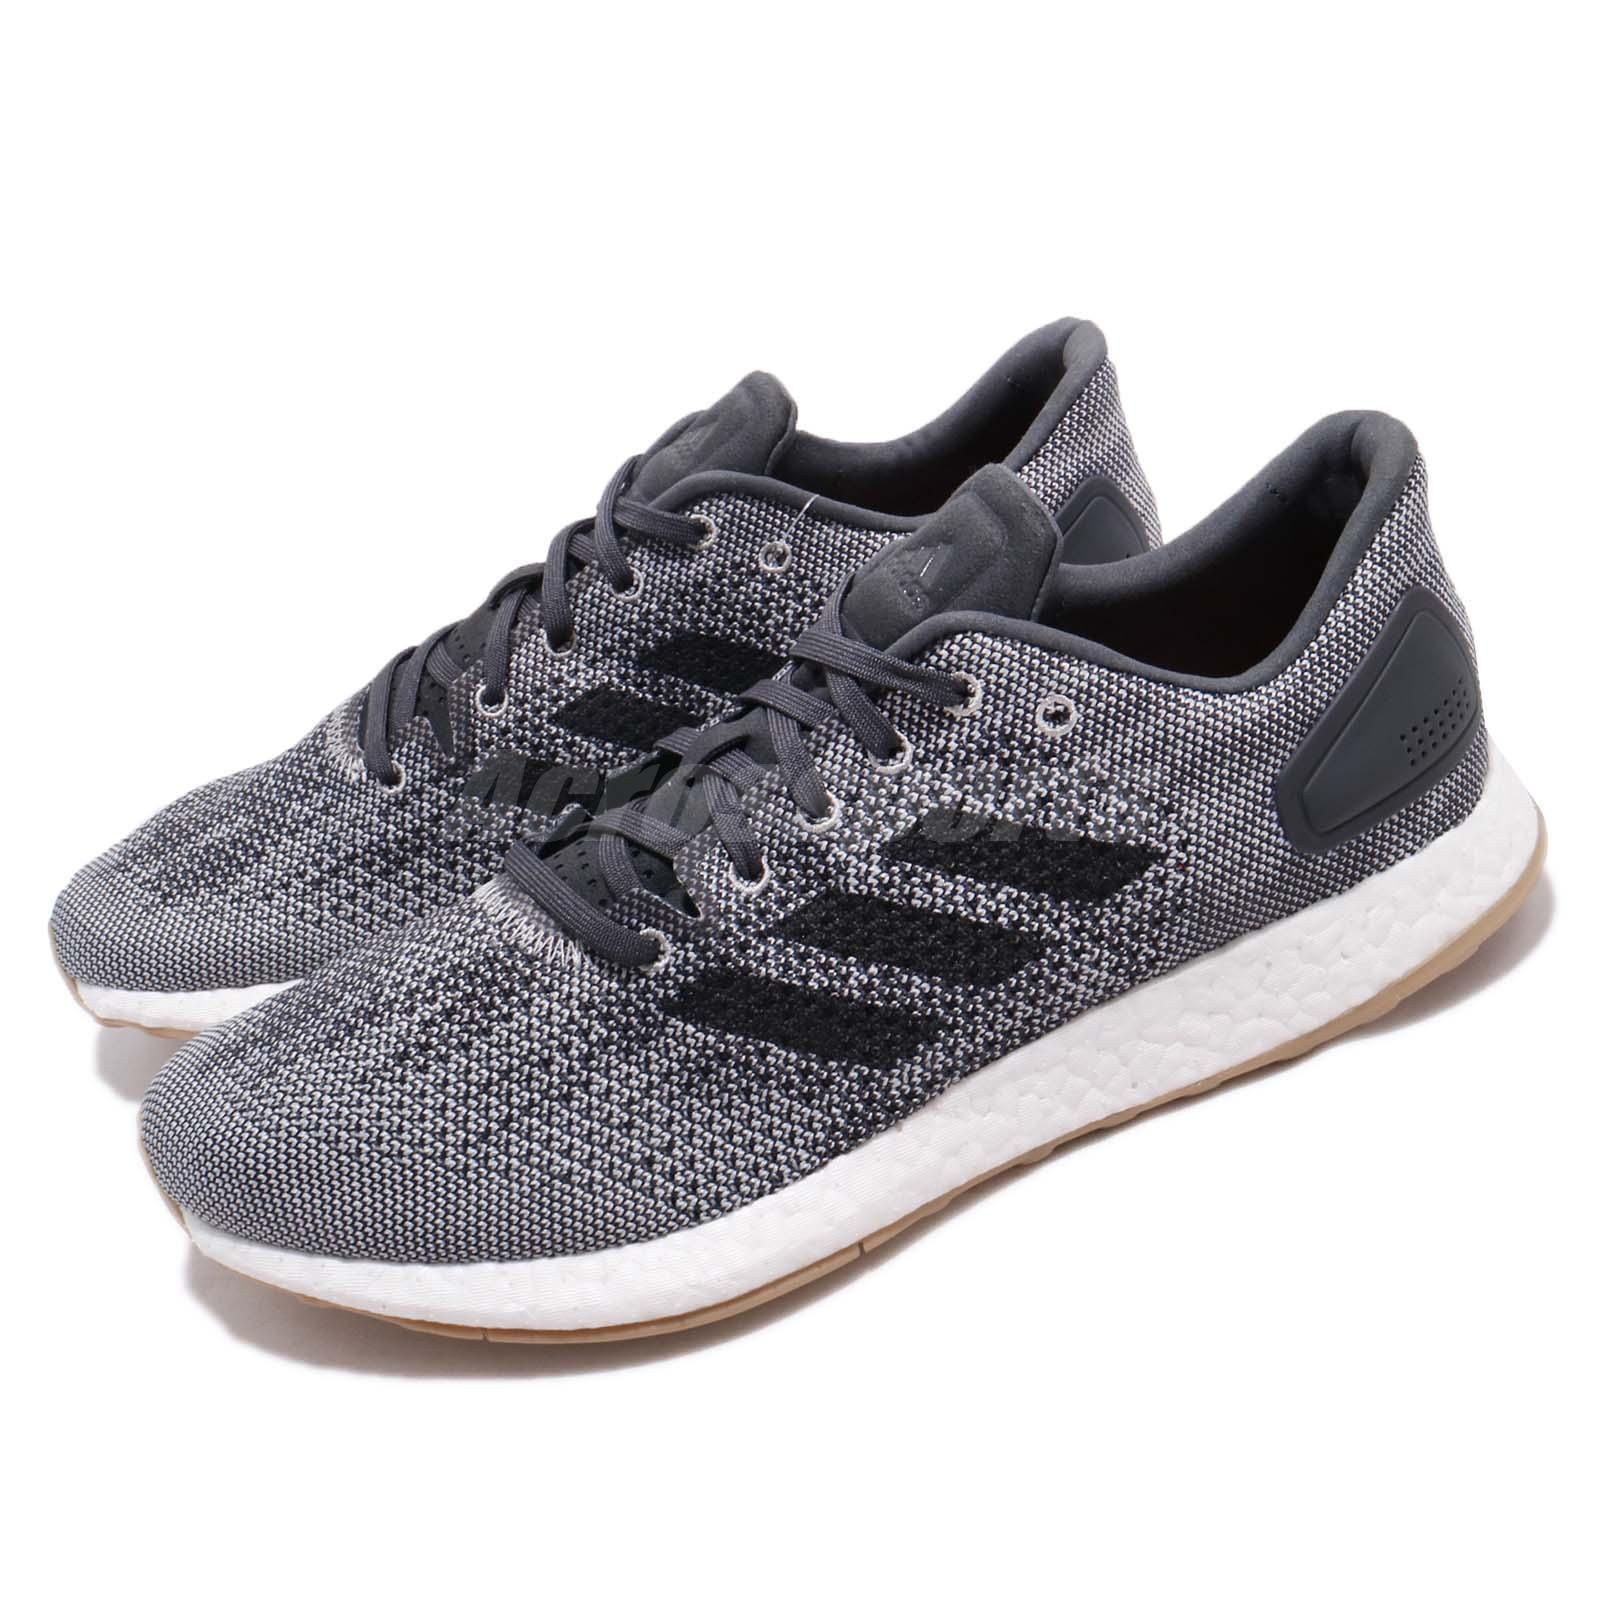 c388ccb1d6dc8 Details about adidas PureBoost DPR Boost Carbon Black Men Running Shoes  Sneakers CM8319